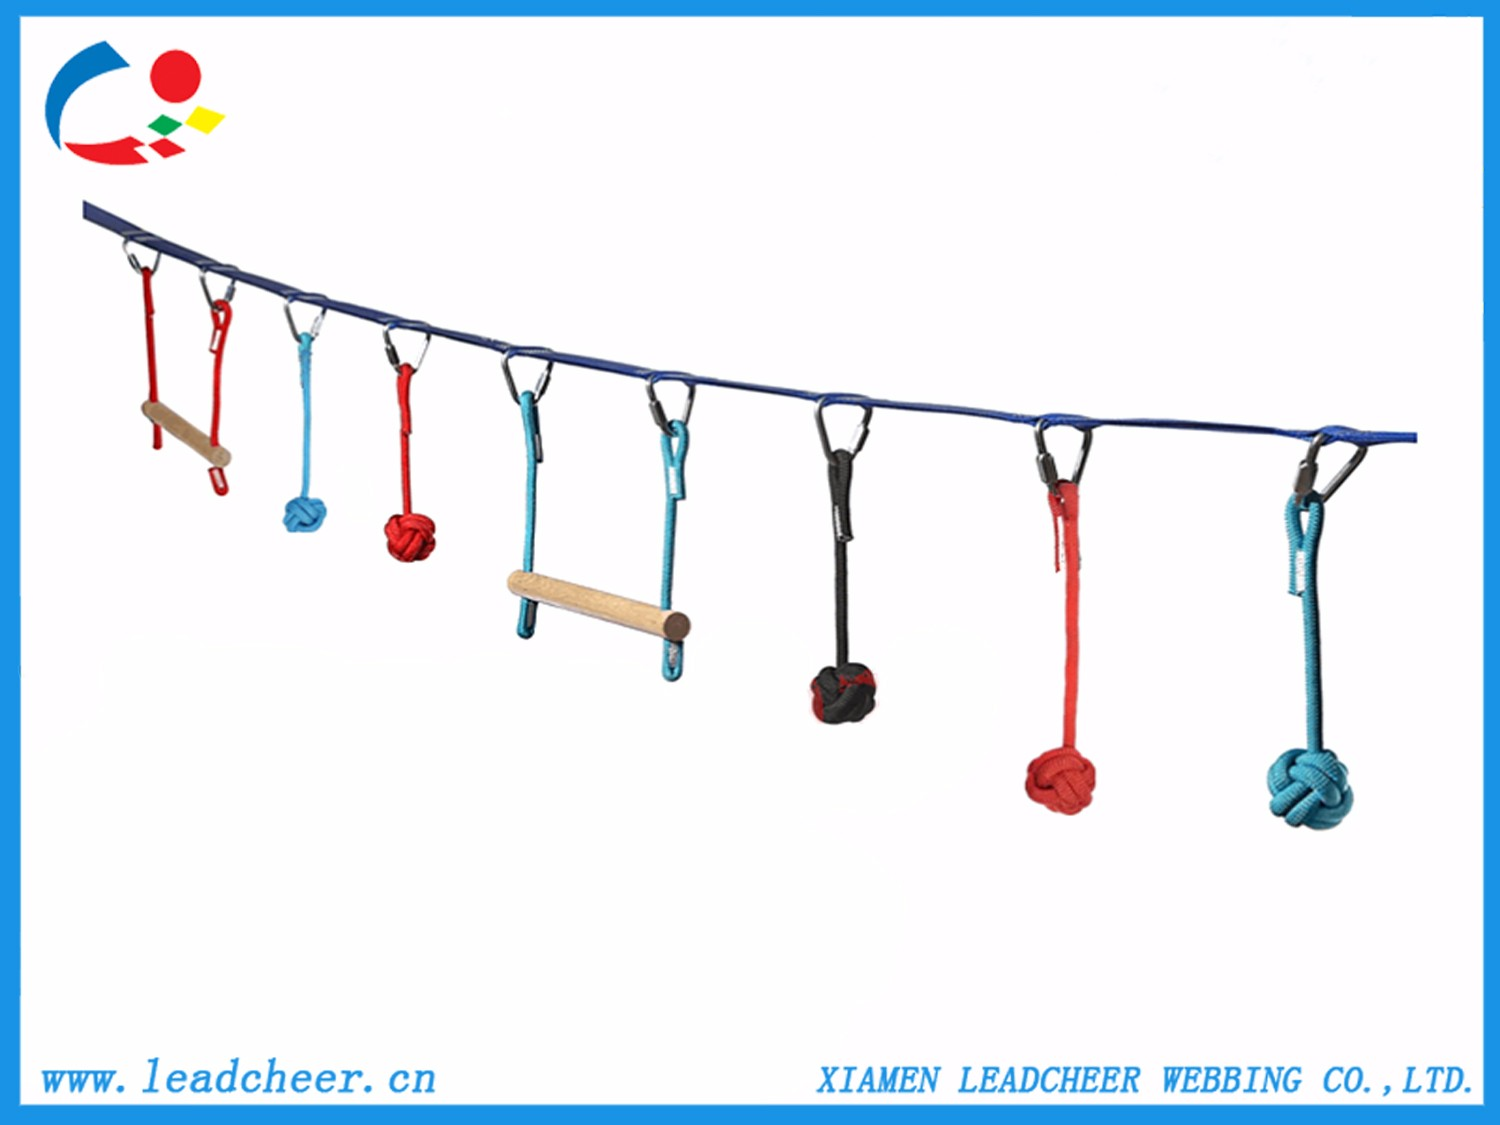 High quality Factory Professional Outdoor Slackline with Ratchets and Sling Quotes,China Factory Professional Outdoor Slackline with Ratchets and Sling Factory,Factory Professional Outdoor Slackline with Ratchets and Sling Purchasing